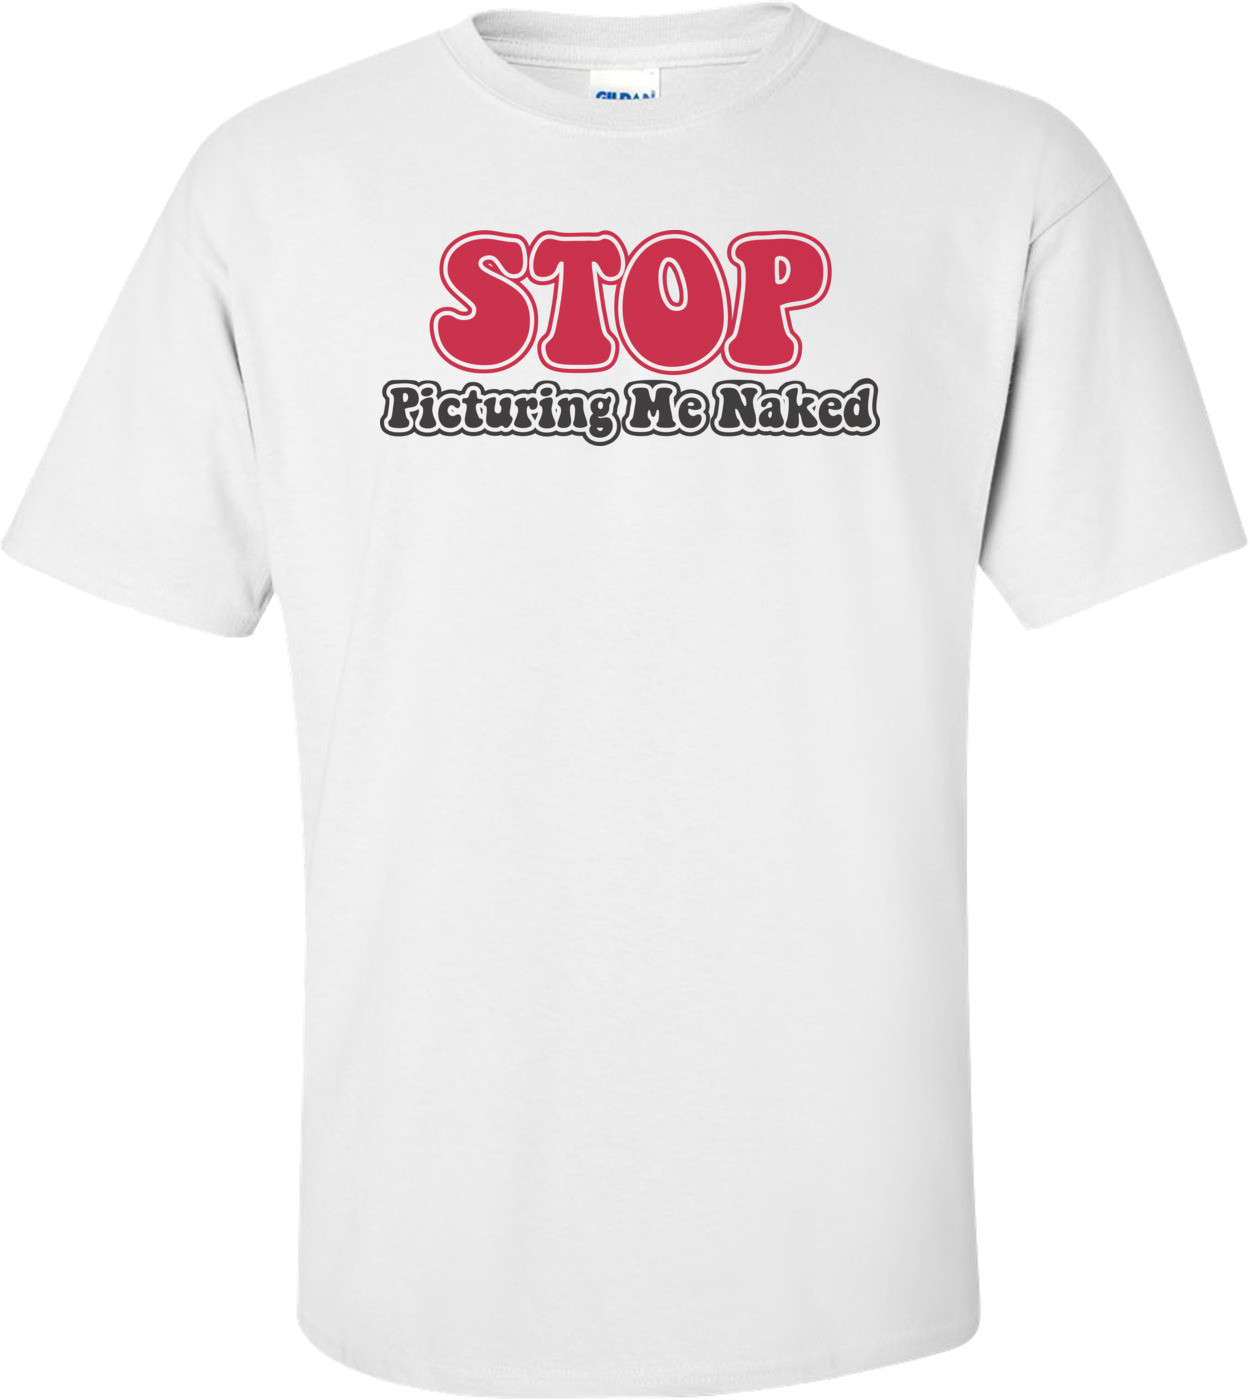 Stop Picturing Me Naked T-shirt